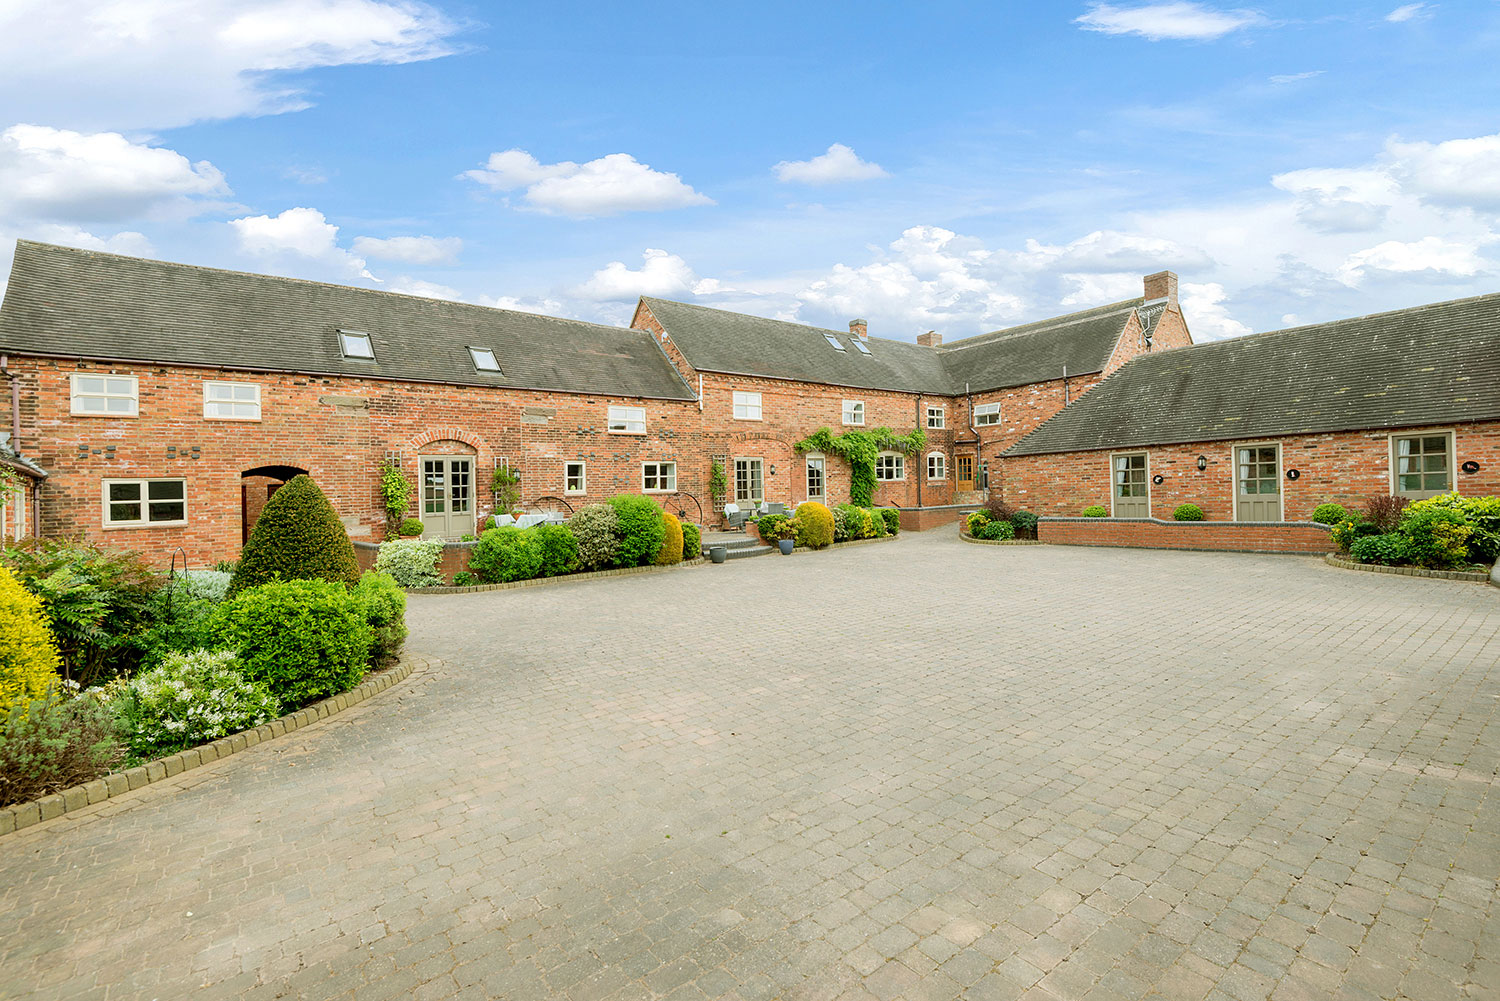 Holiday cottages and events venue in central UK | Upper Rectory Farm Cottages